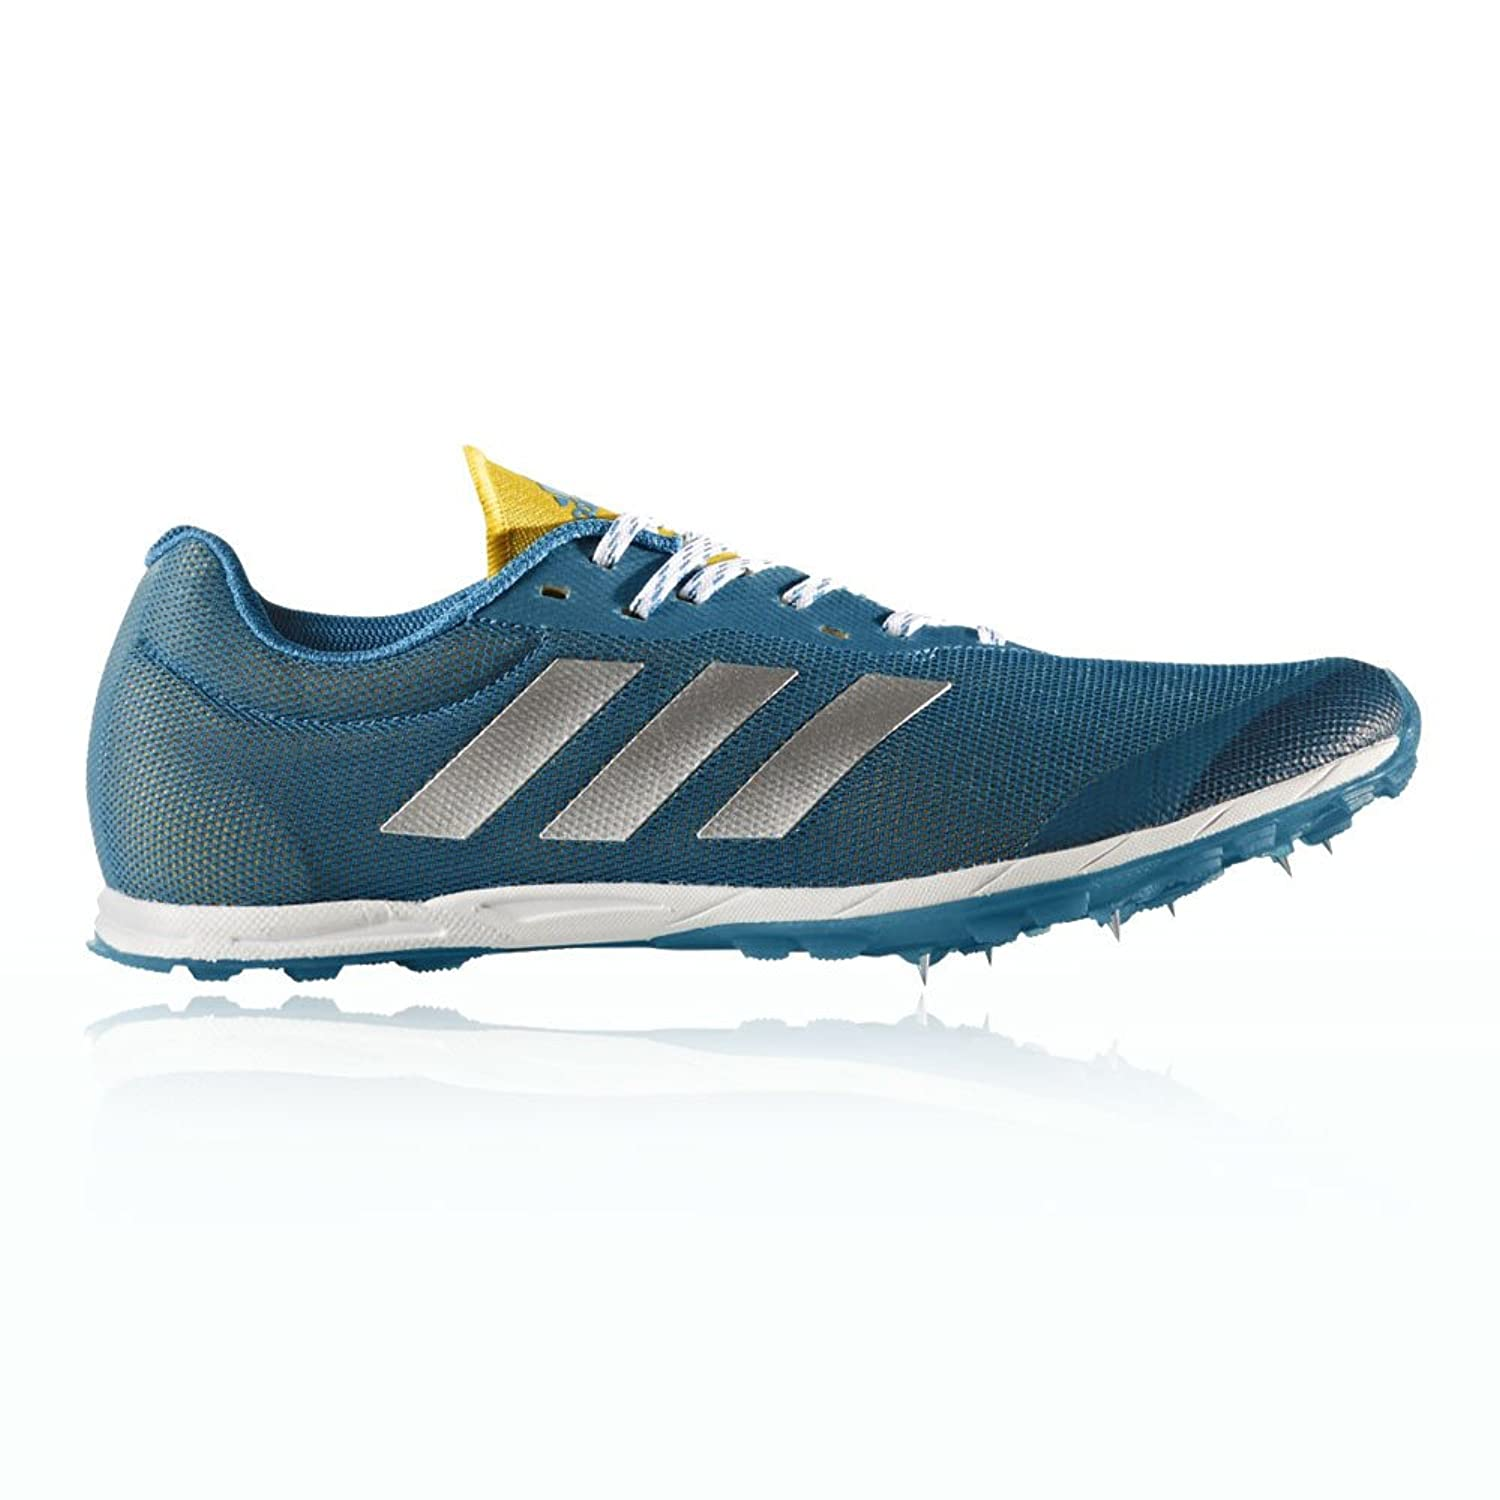 low priced 4375c 9a4e0 adidas Mens XCS Running Shoes Blue